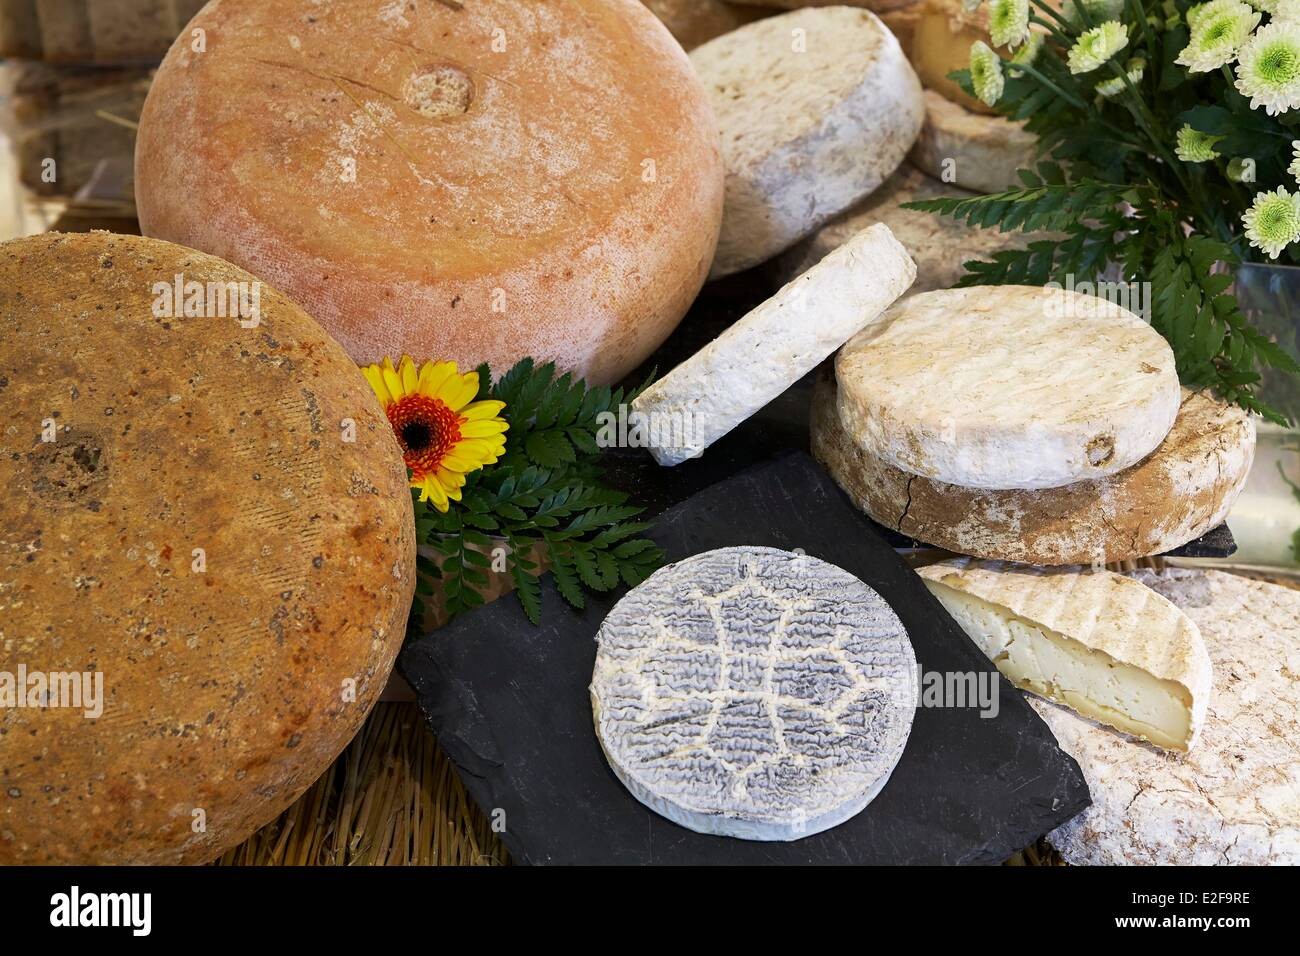 France, Haute Garonne, Toulouse, Xavier Fromagerie, Tomme de Ossau Iraty sheep and Goat cheese decorated with the - Stock Image